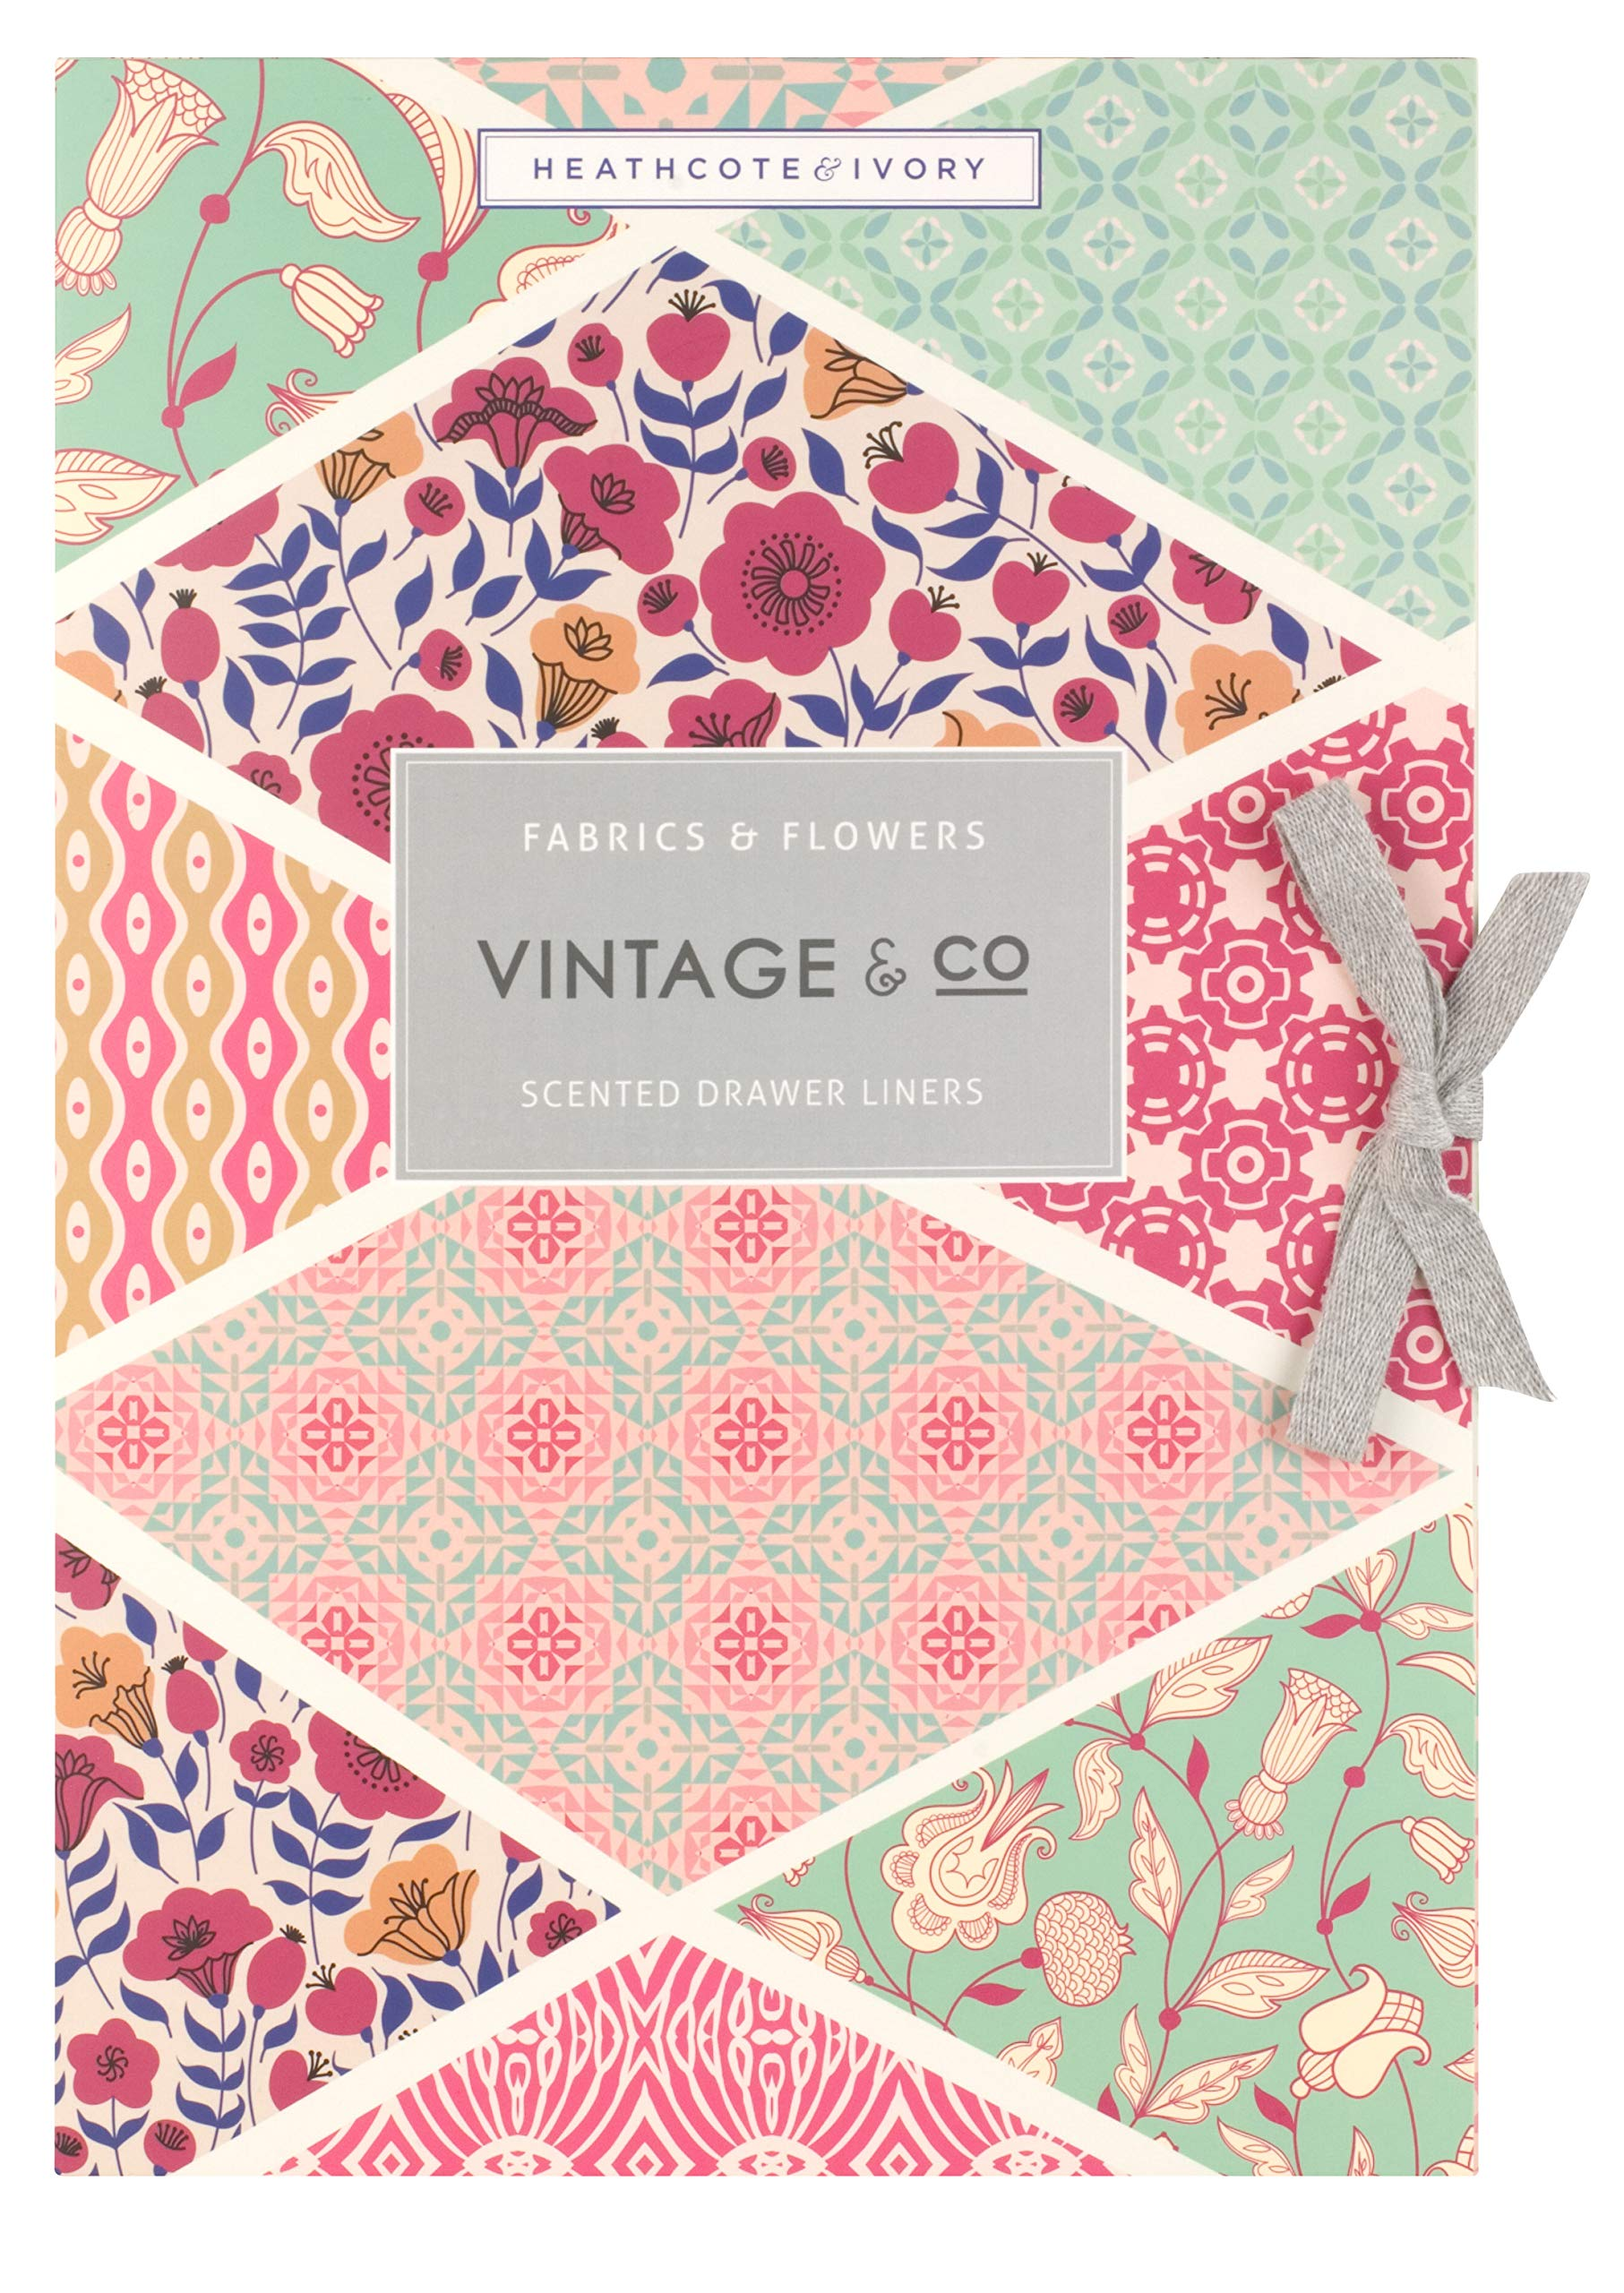 Vintage & Co Fabric & Flowers Scented Drawer liners (Pack of 6) ... by Heathcote & Ivory (Image #3)